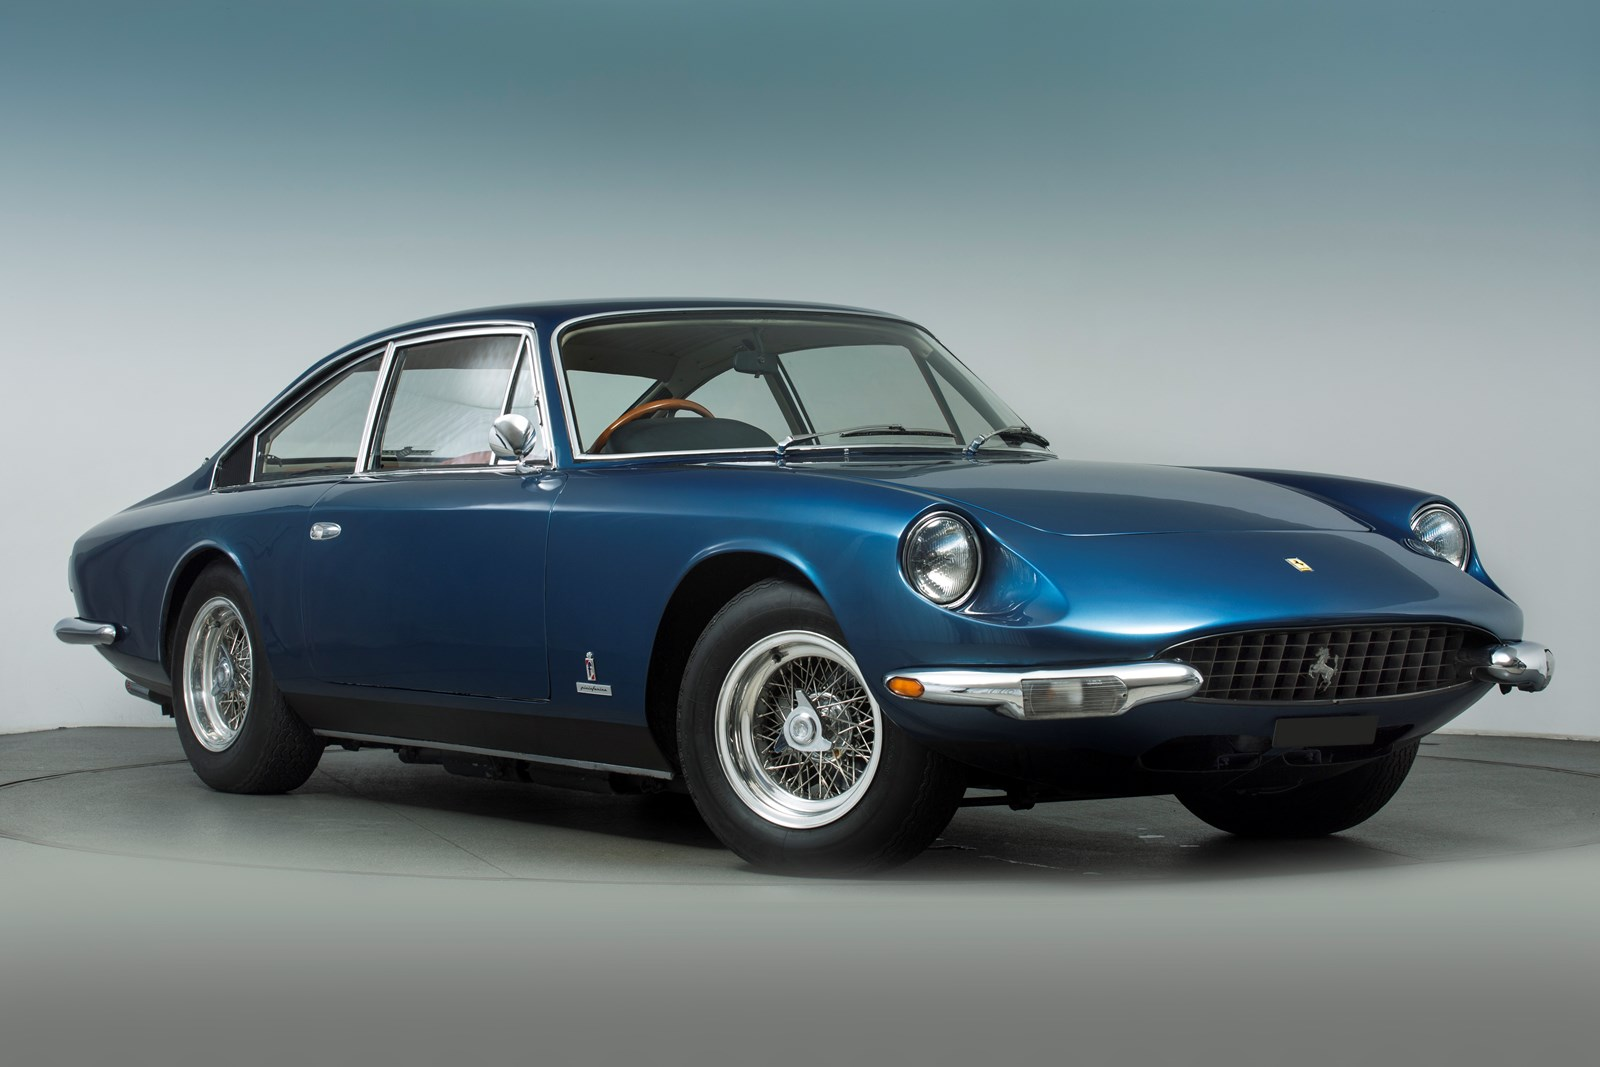 Introduced in 1969 and designed by Aldo Brovarone at Pininfarina, the 365 GT  2+